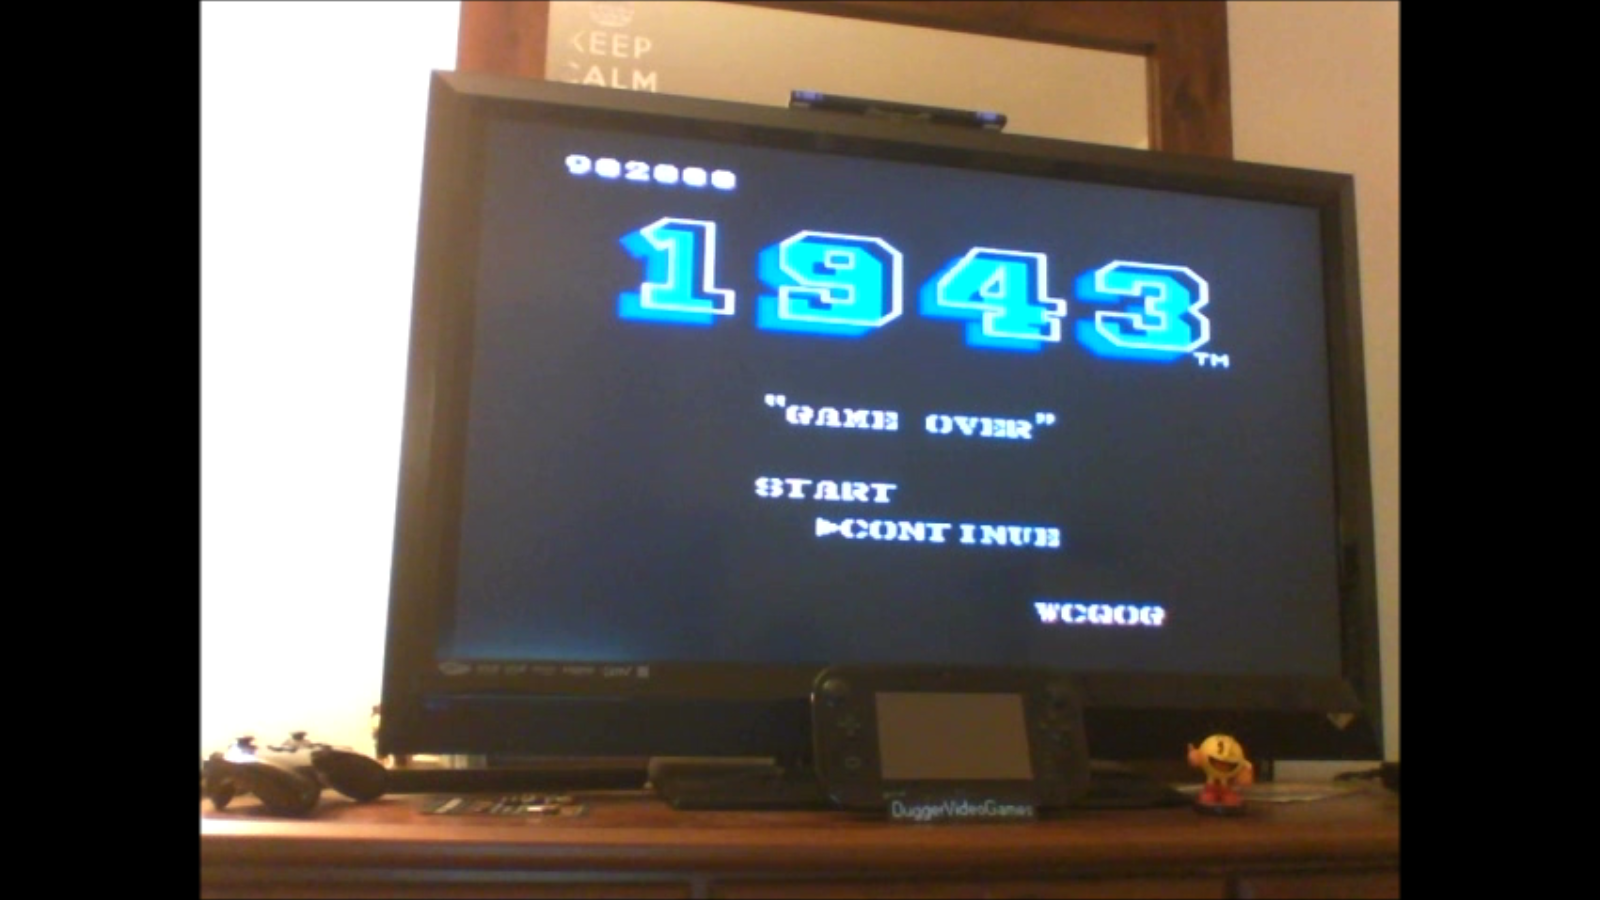 DuggerVideoGames: 1943 (NES/Famicom Emulated) 902,000 points on 2016-11-08 16:21:45